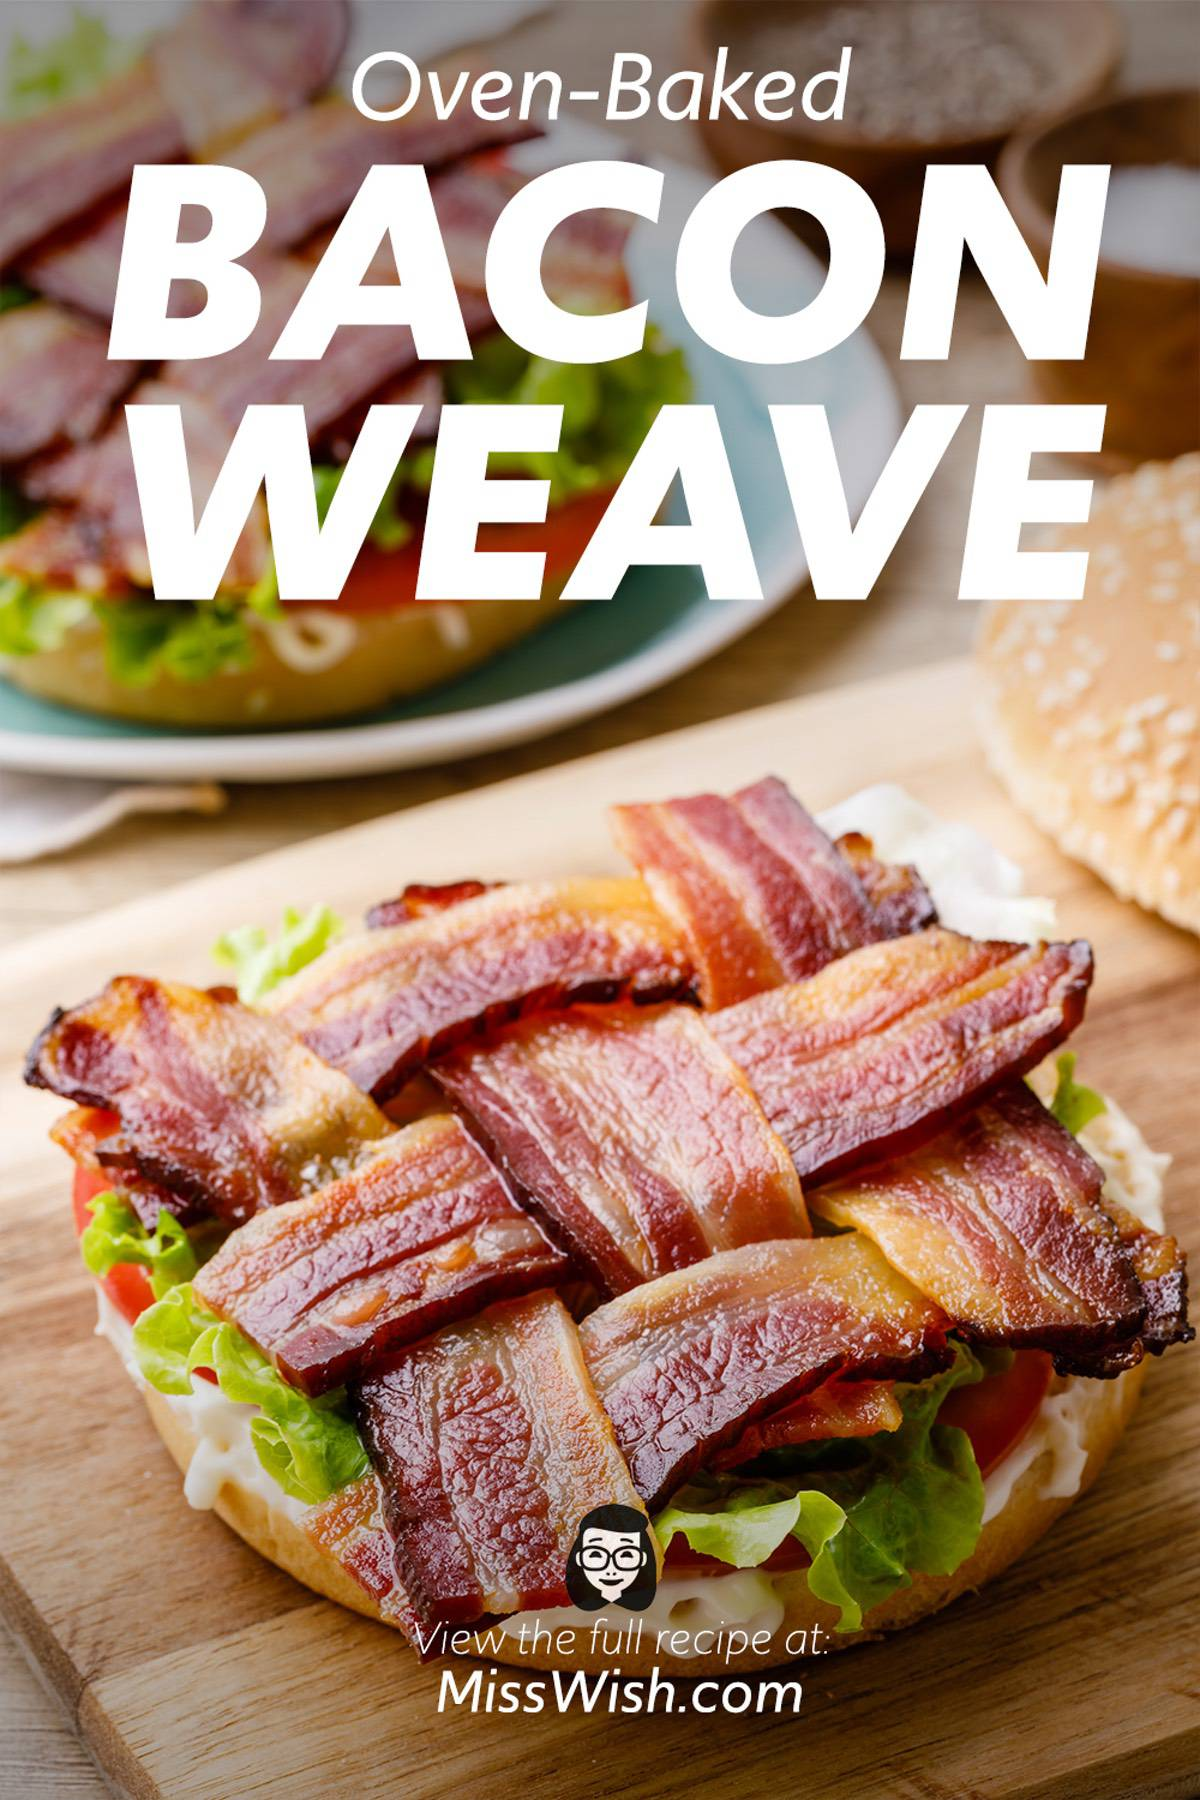 Easy Oven-Baked Bacon Weave